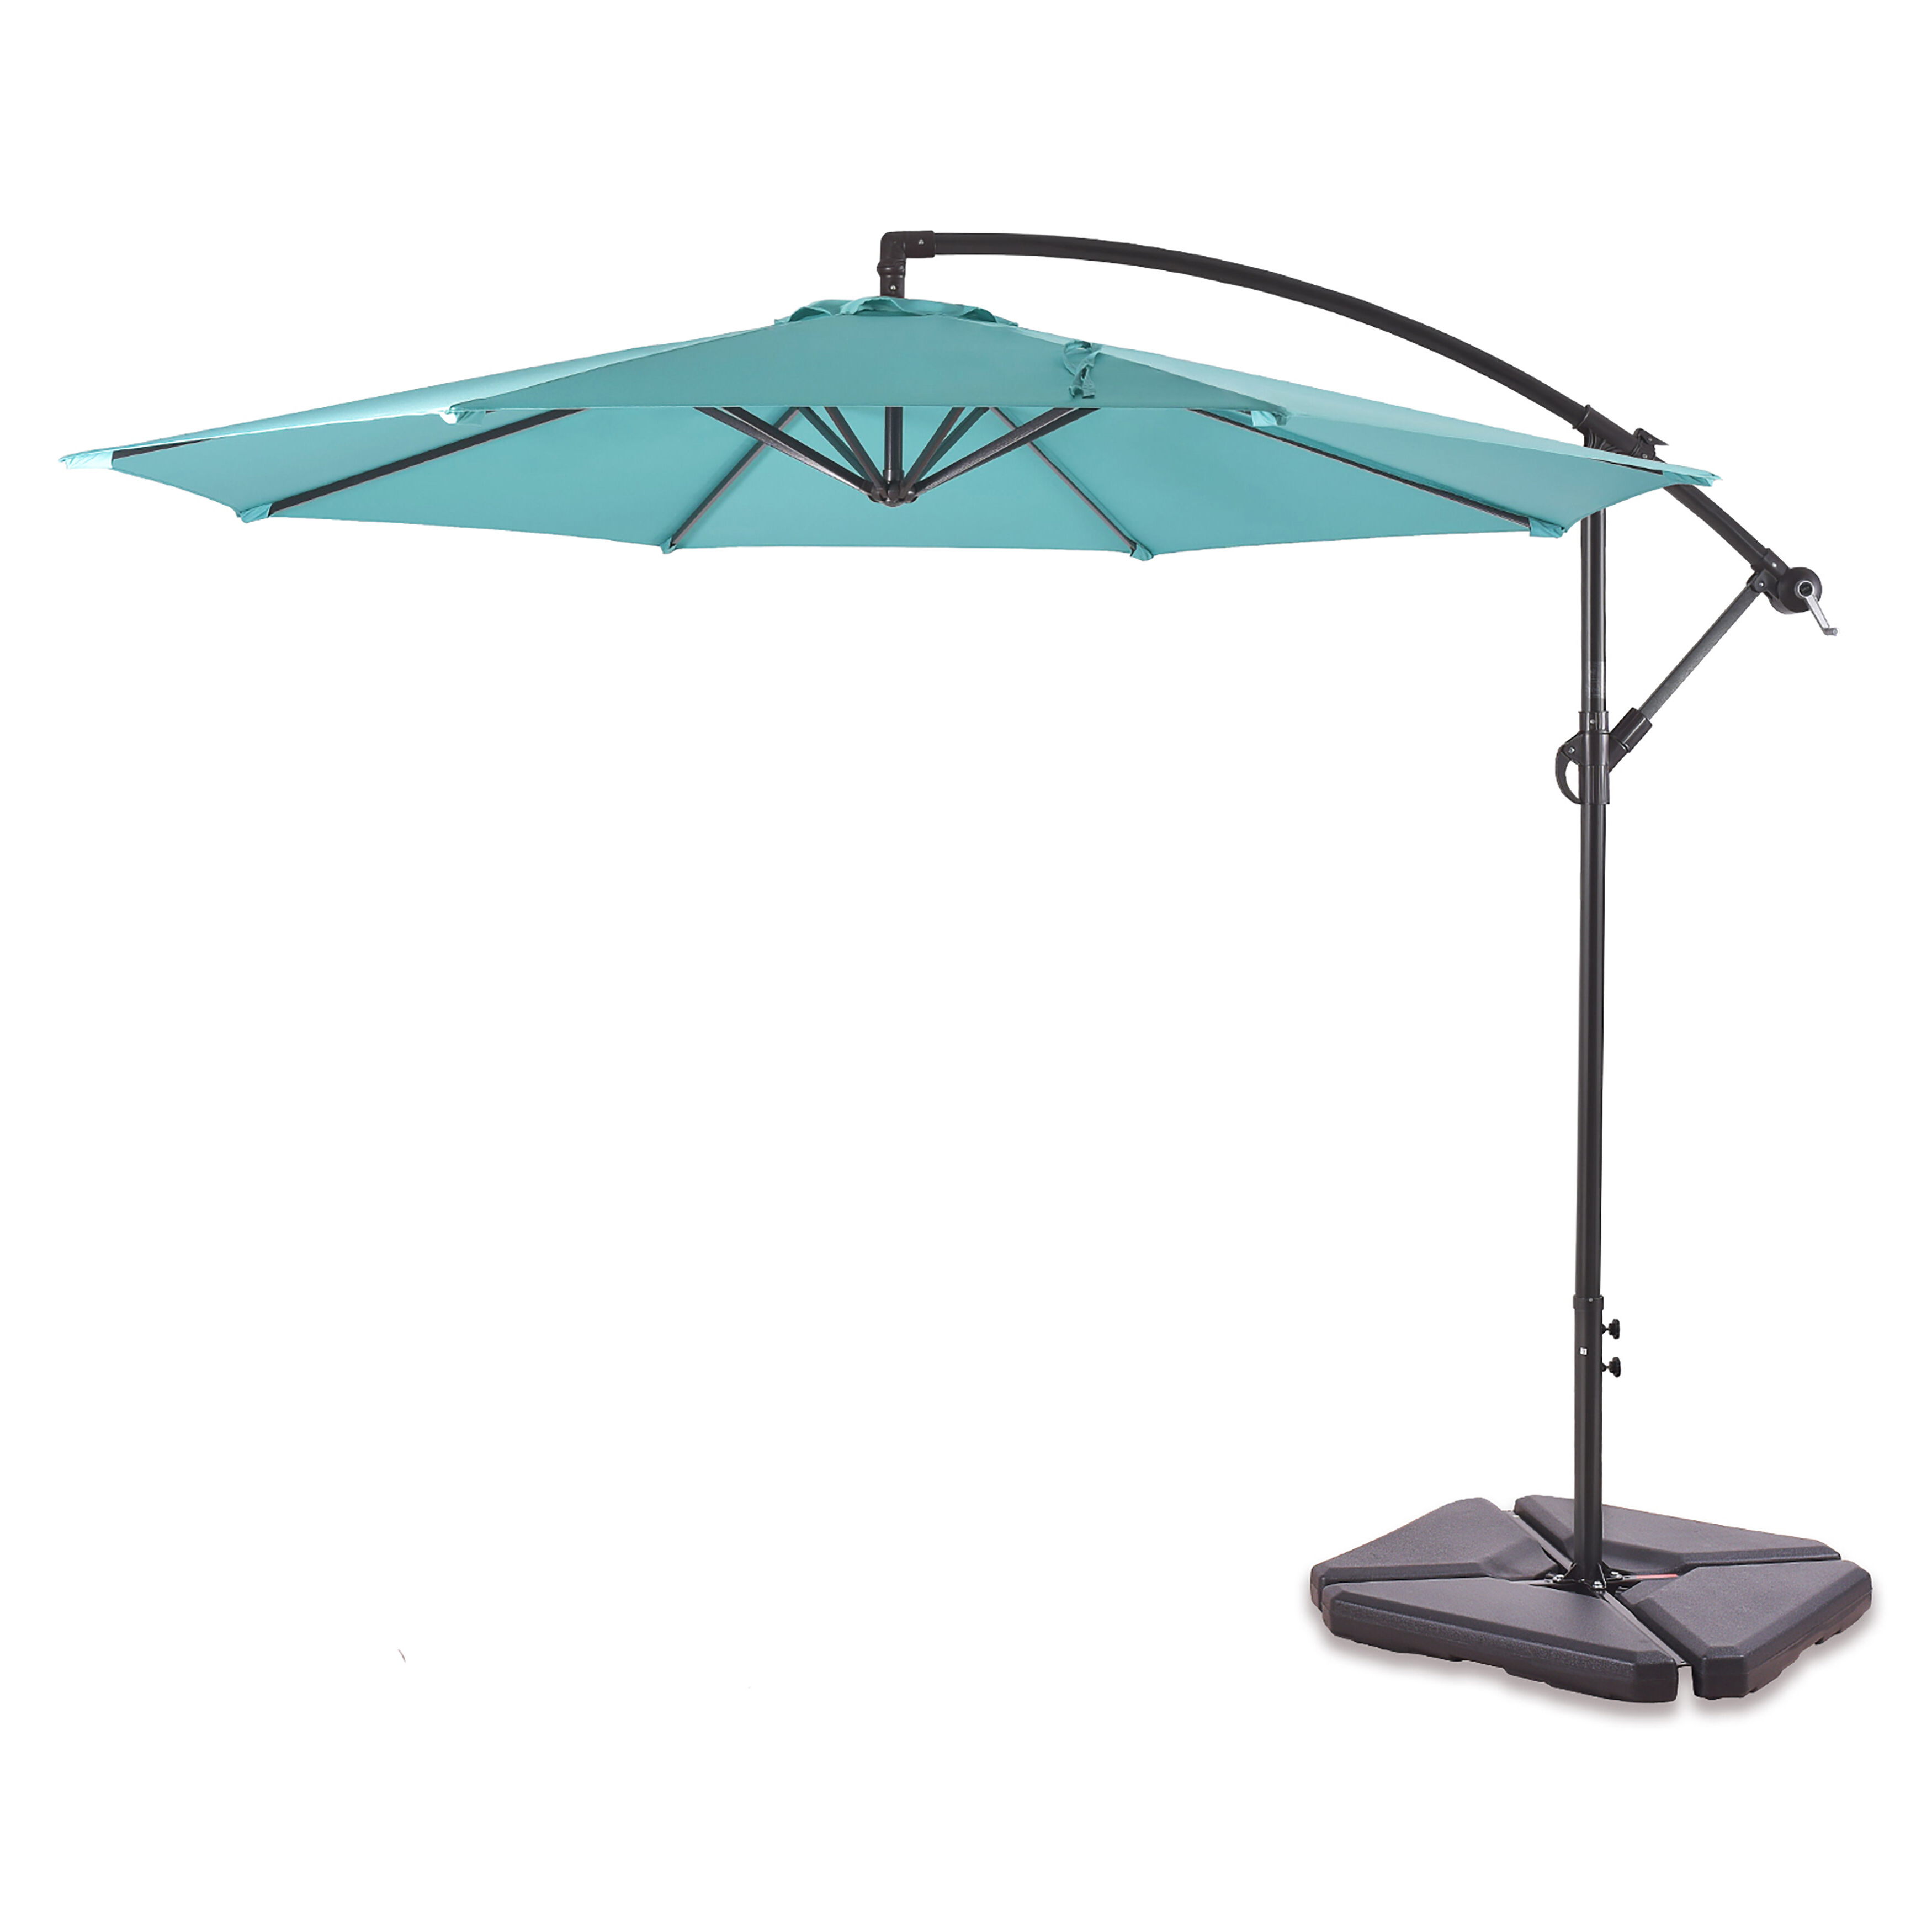 Fashionable Trotman Cantilever Umbrellas Within Karr 10' Cantilever Umbrella (View 13 of 20)